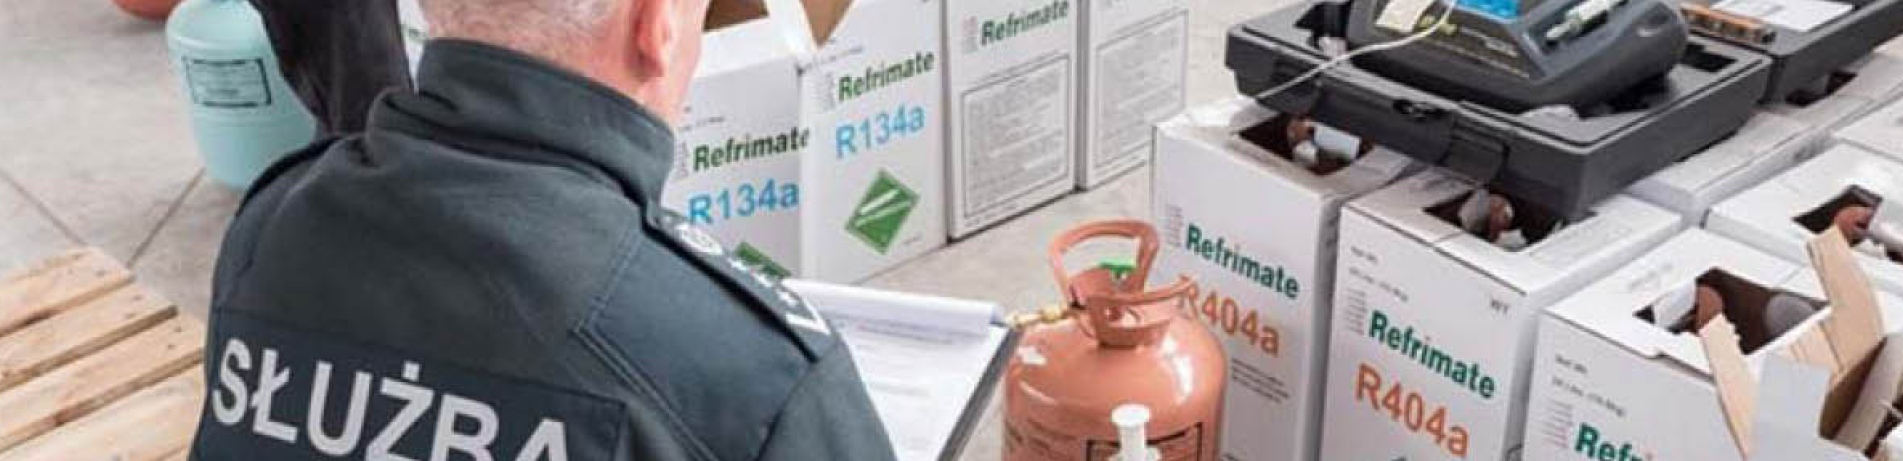 Polish official investigates refrigerant containers for illegal hydrofluorocarbons (HFCs)